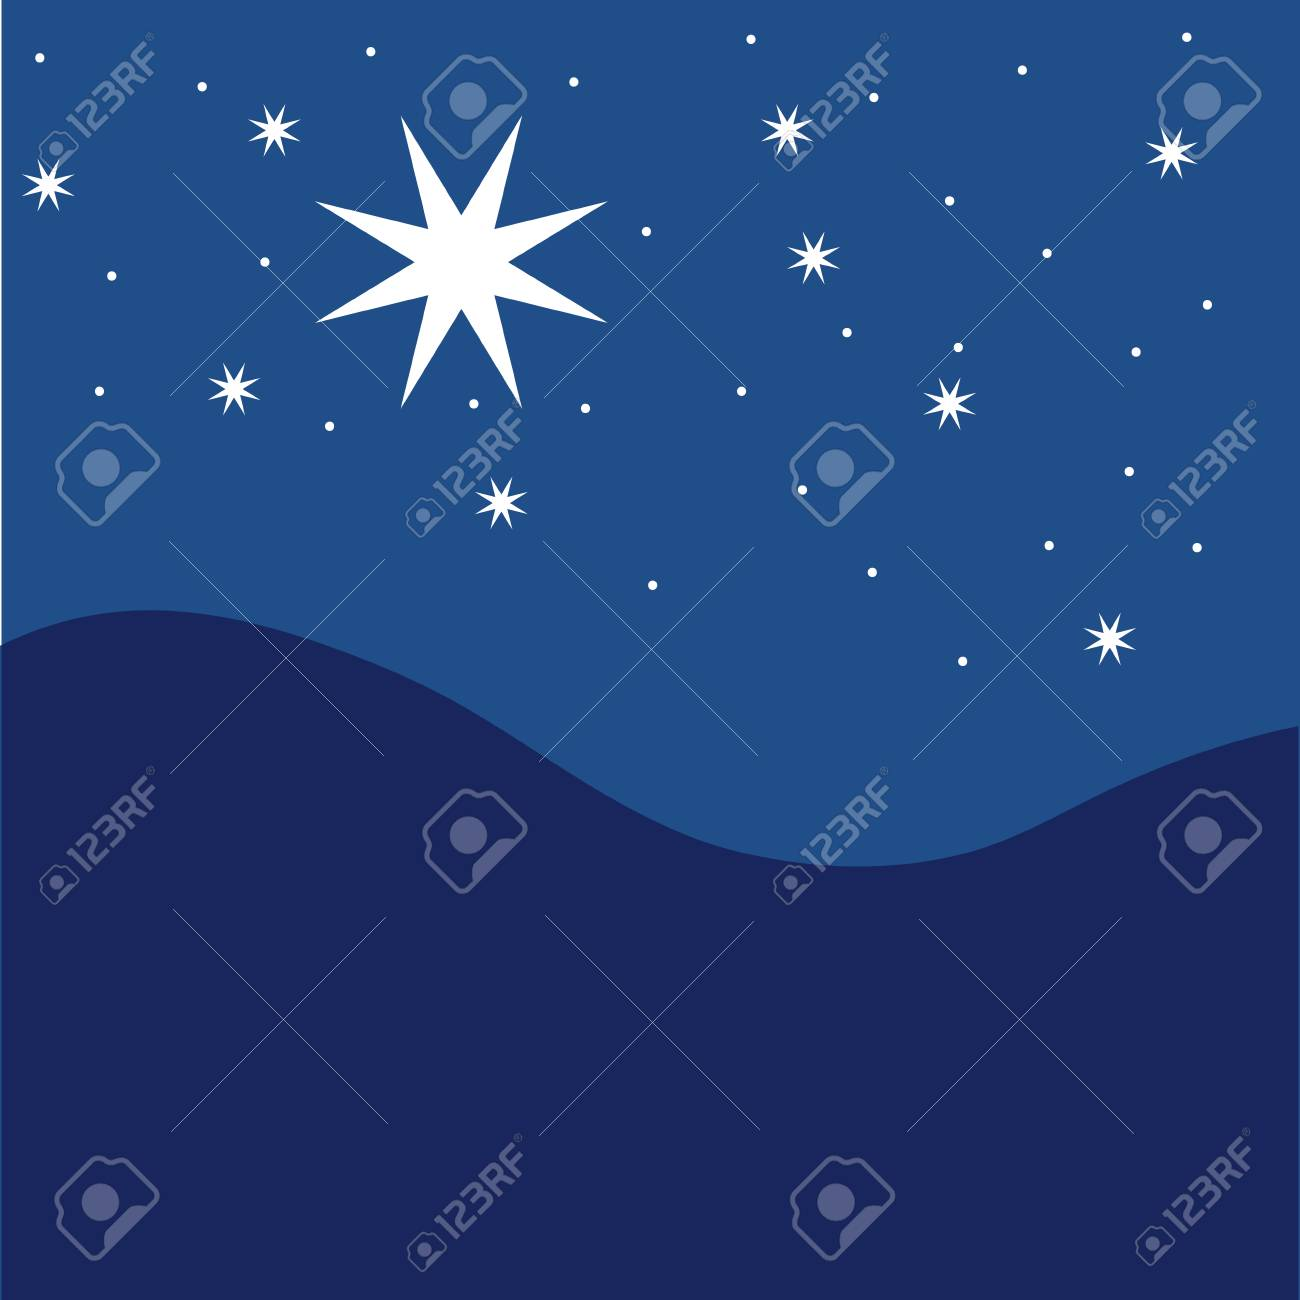 Stars on blue striped background. Festive pattern great for winter or christmas themes. vector file included - 88456508